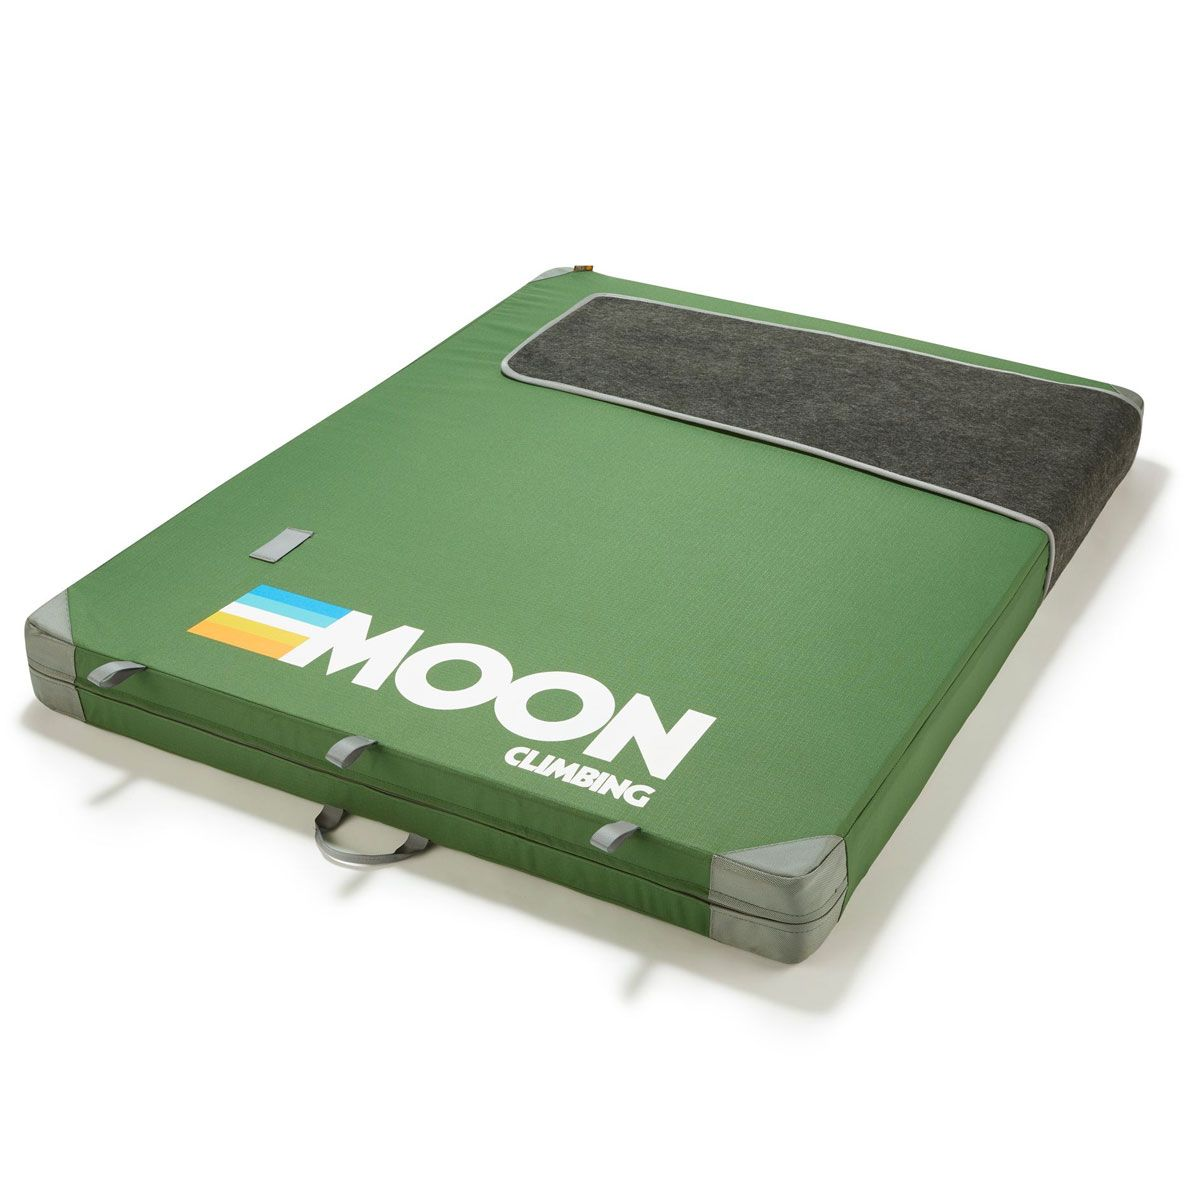 Moon Warrior in Green showing Retro LOGO